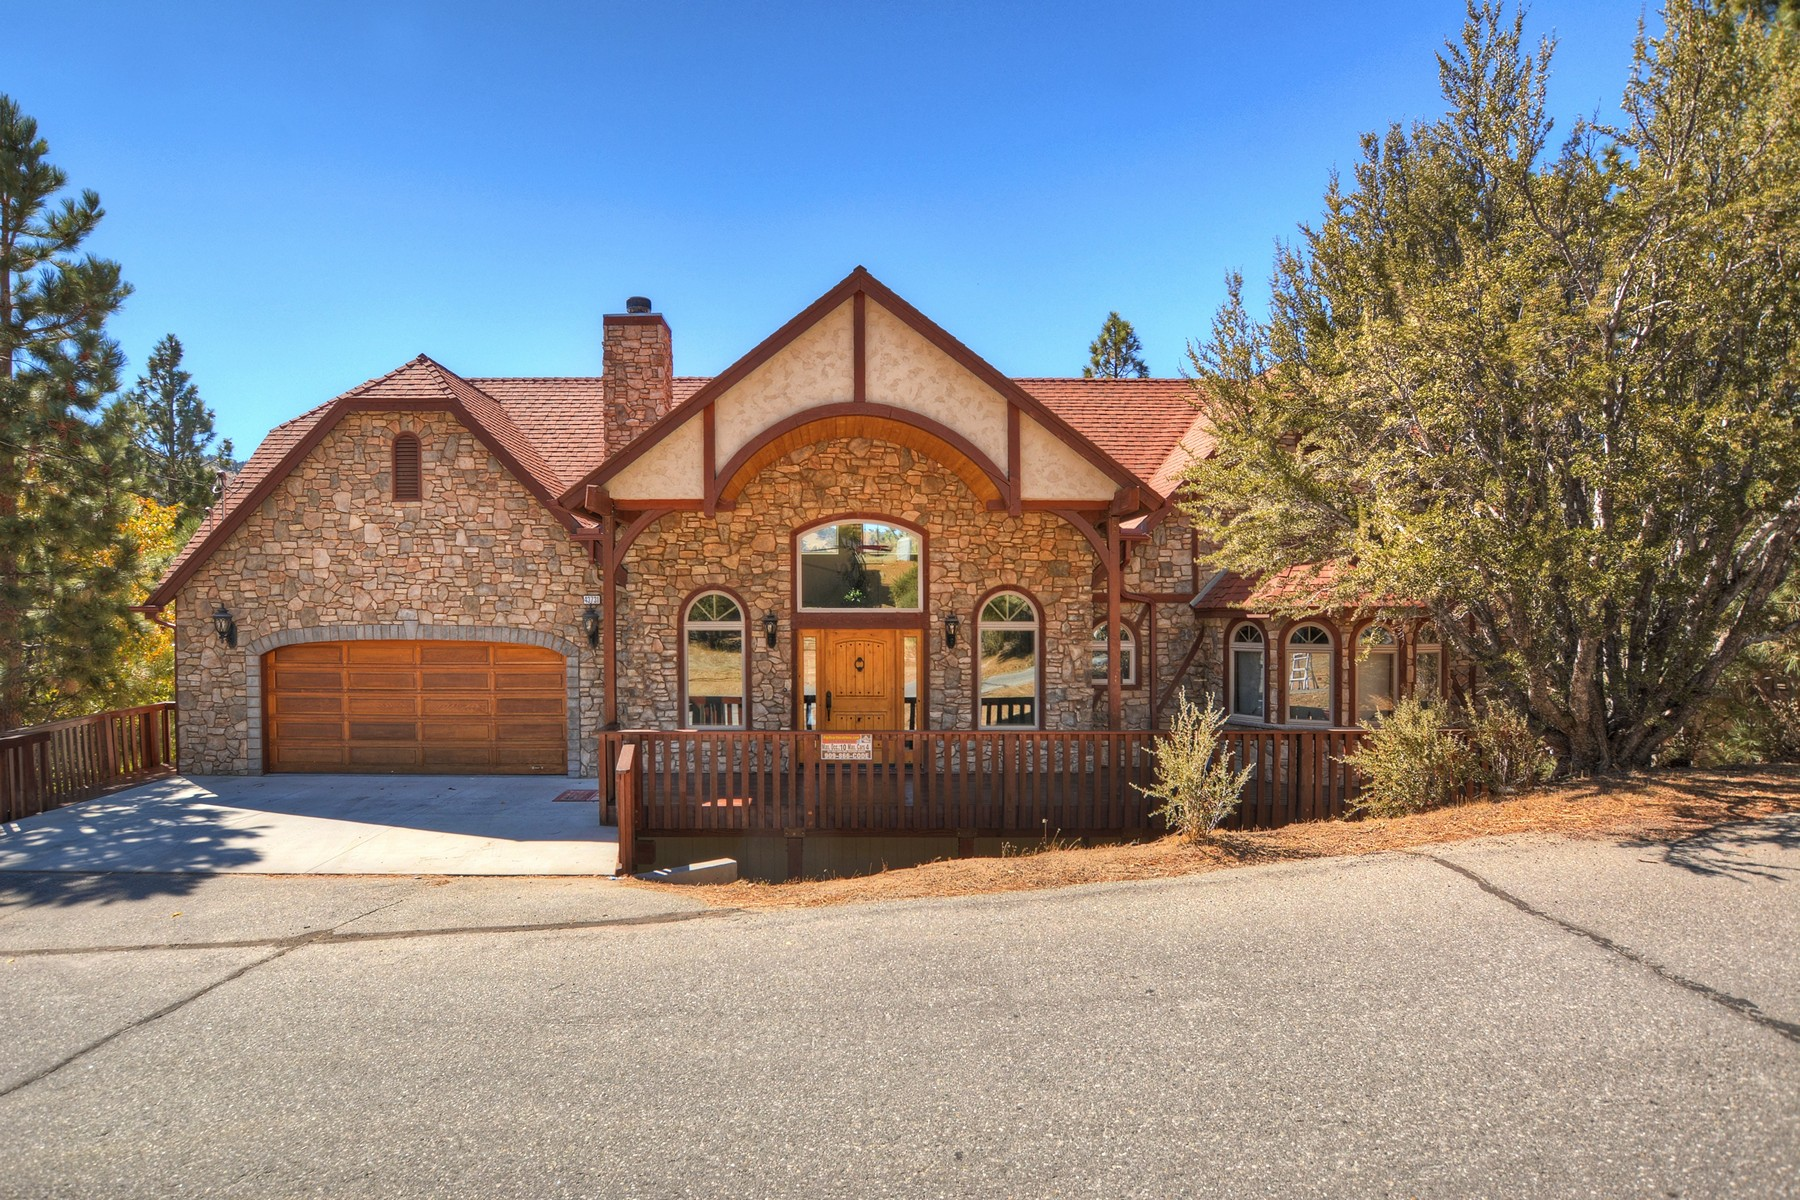 Single Family Home for Sale at 43731 Canyon Crest Big Bear Lake, California 92315 United States